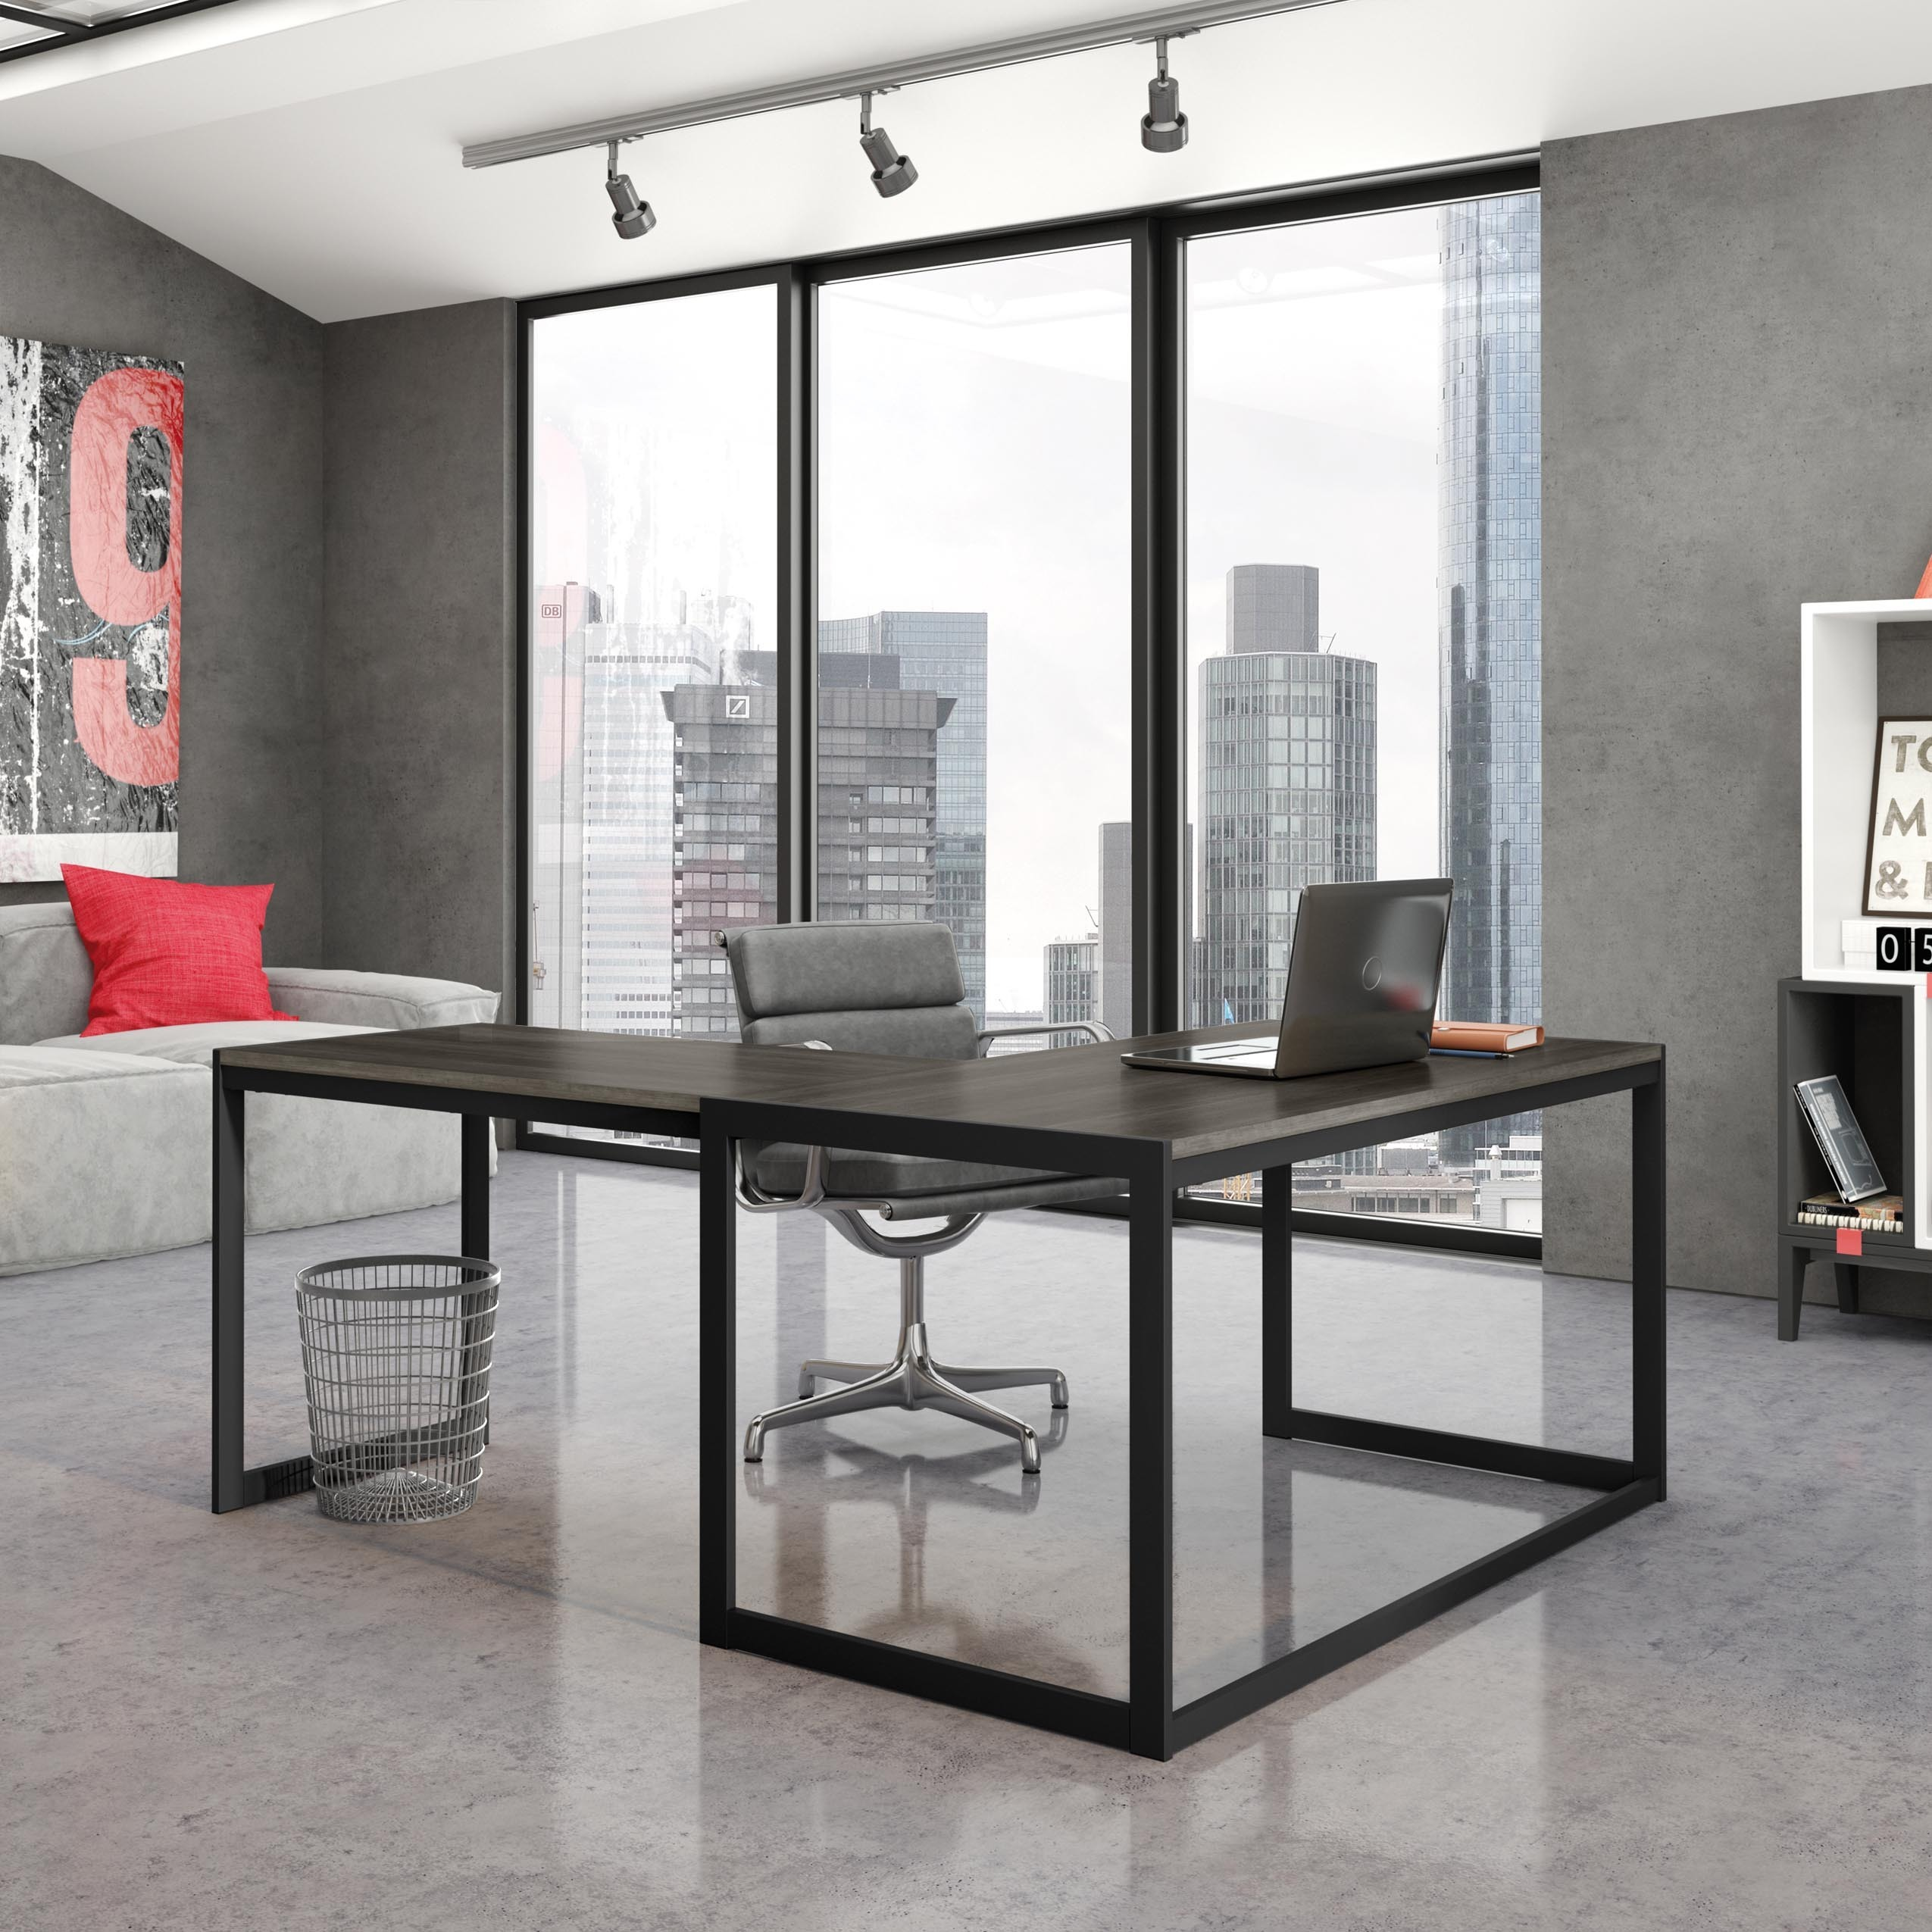 Office Desk Design new exclusive home design comfortable luxury desk office design